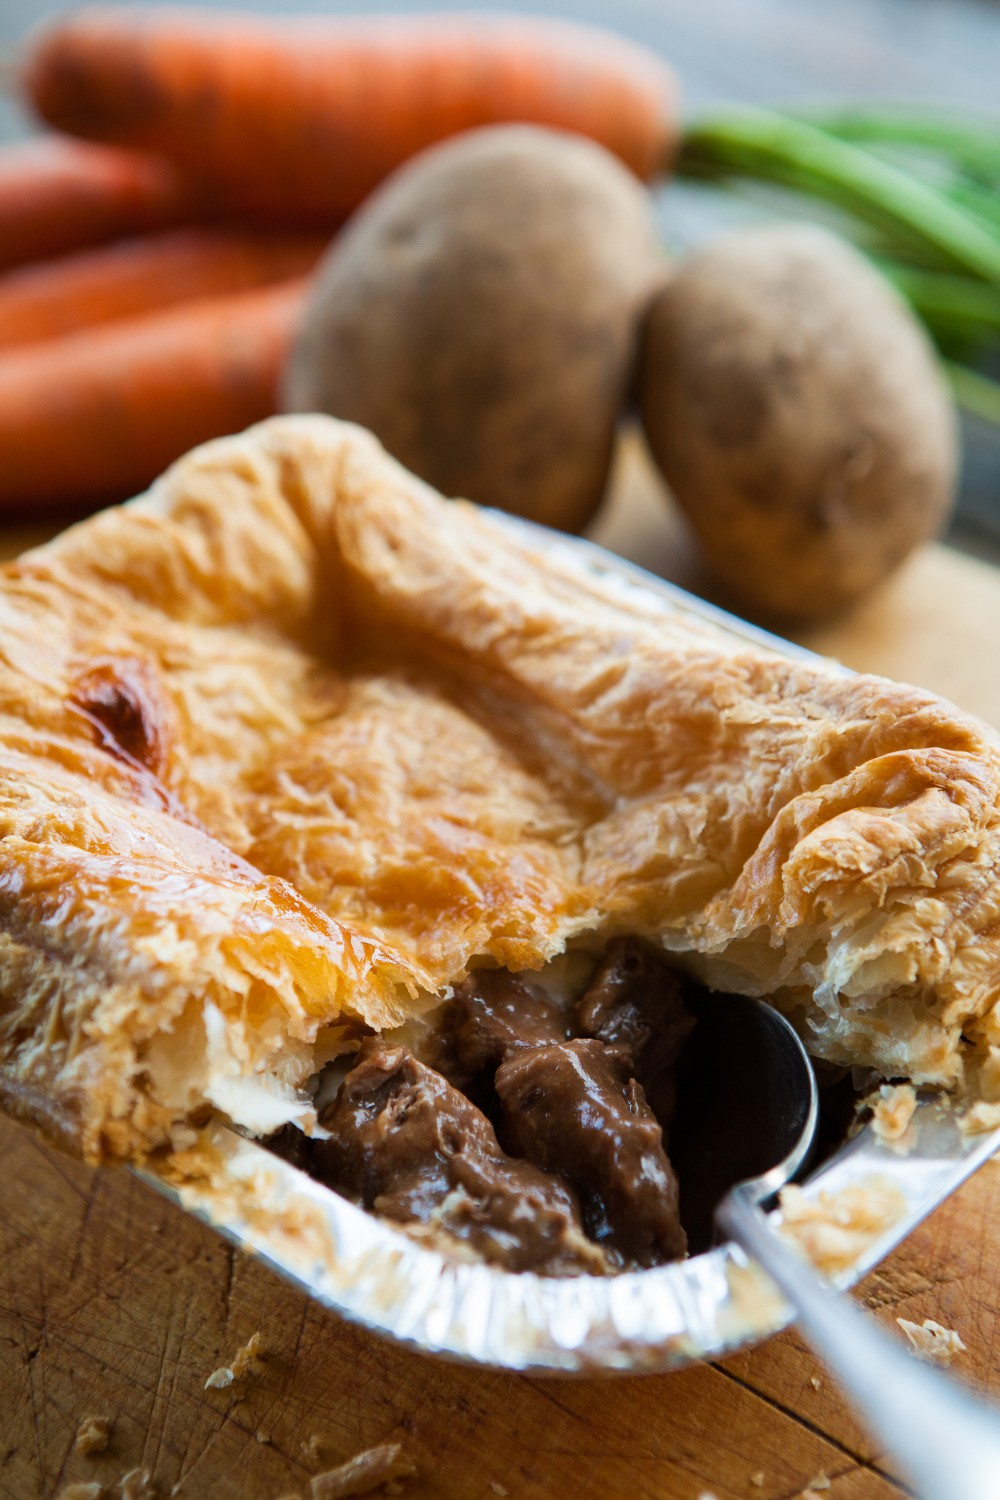 Kilnford Homemade Galloway Steak Pie